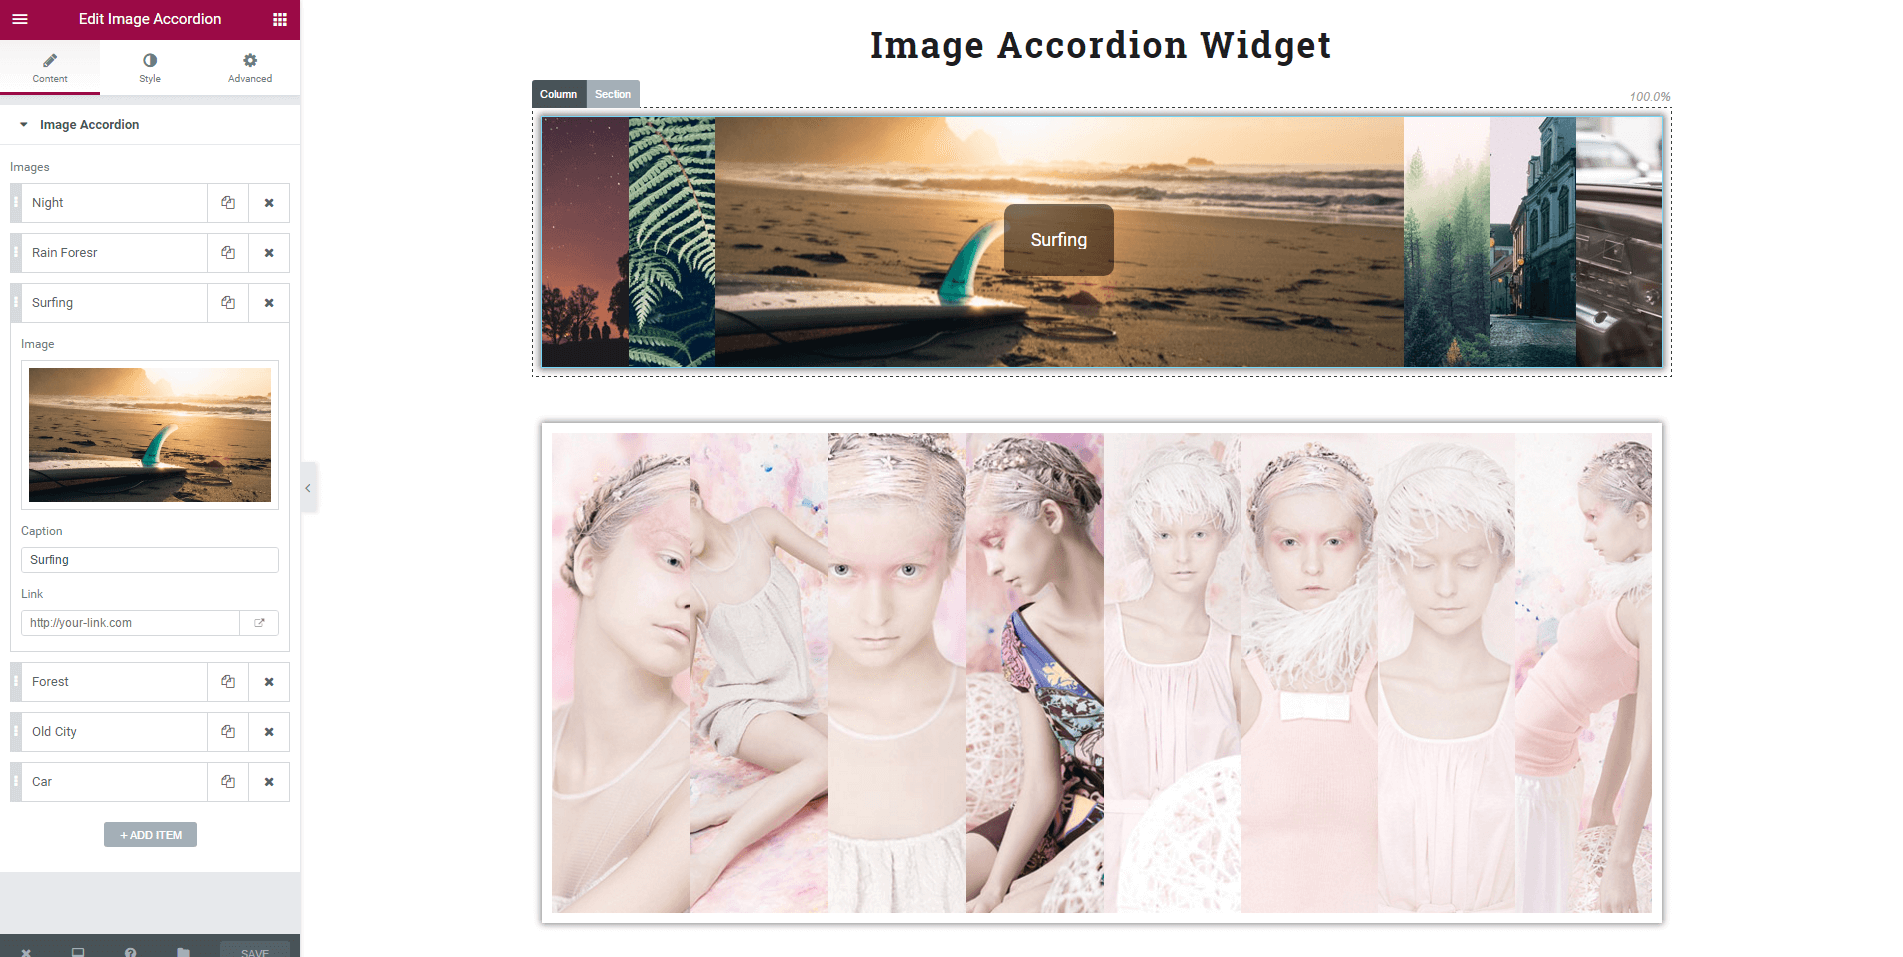 Display images in a beautiful accordion effect.